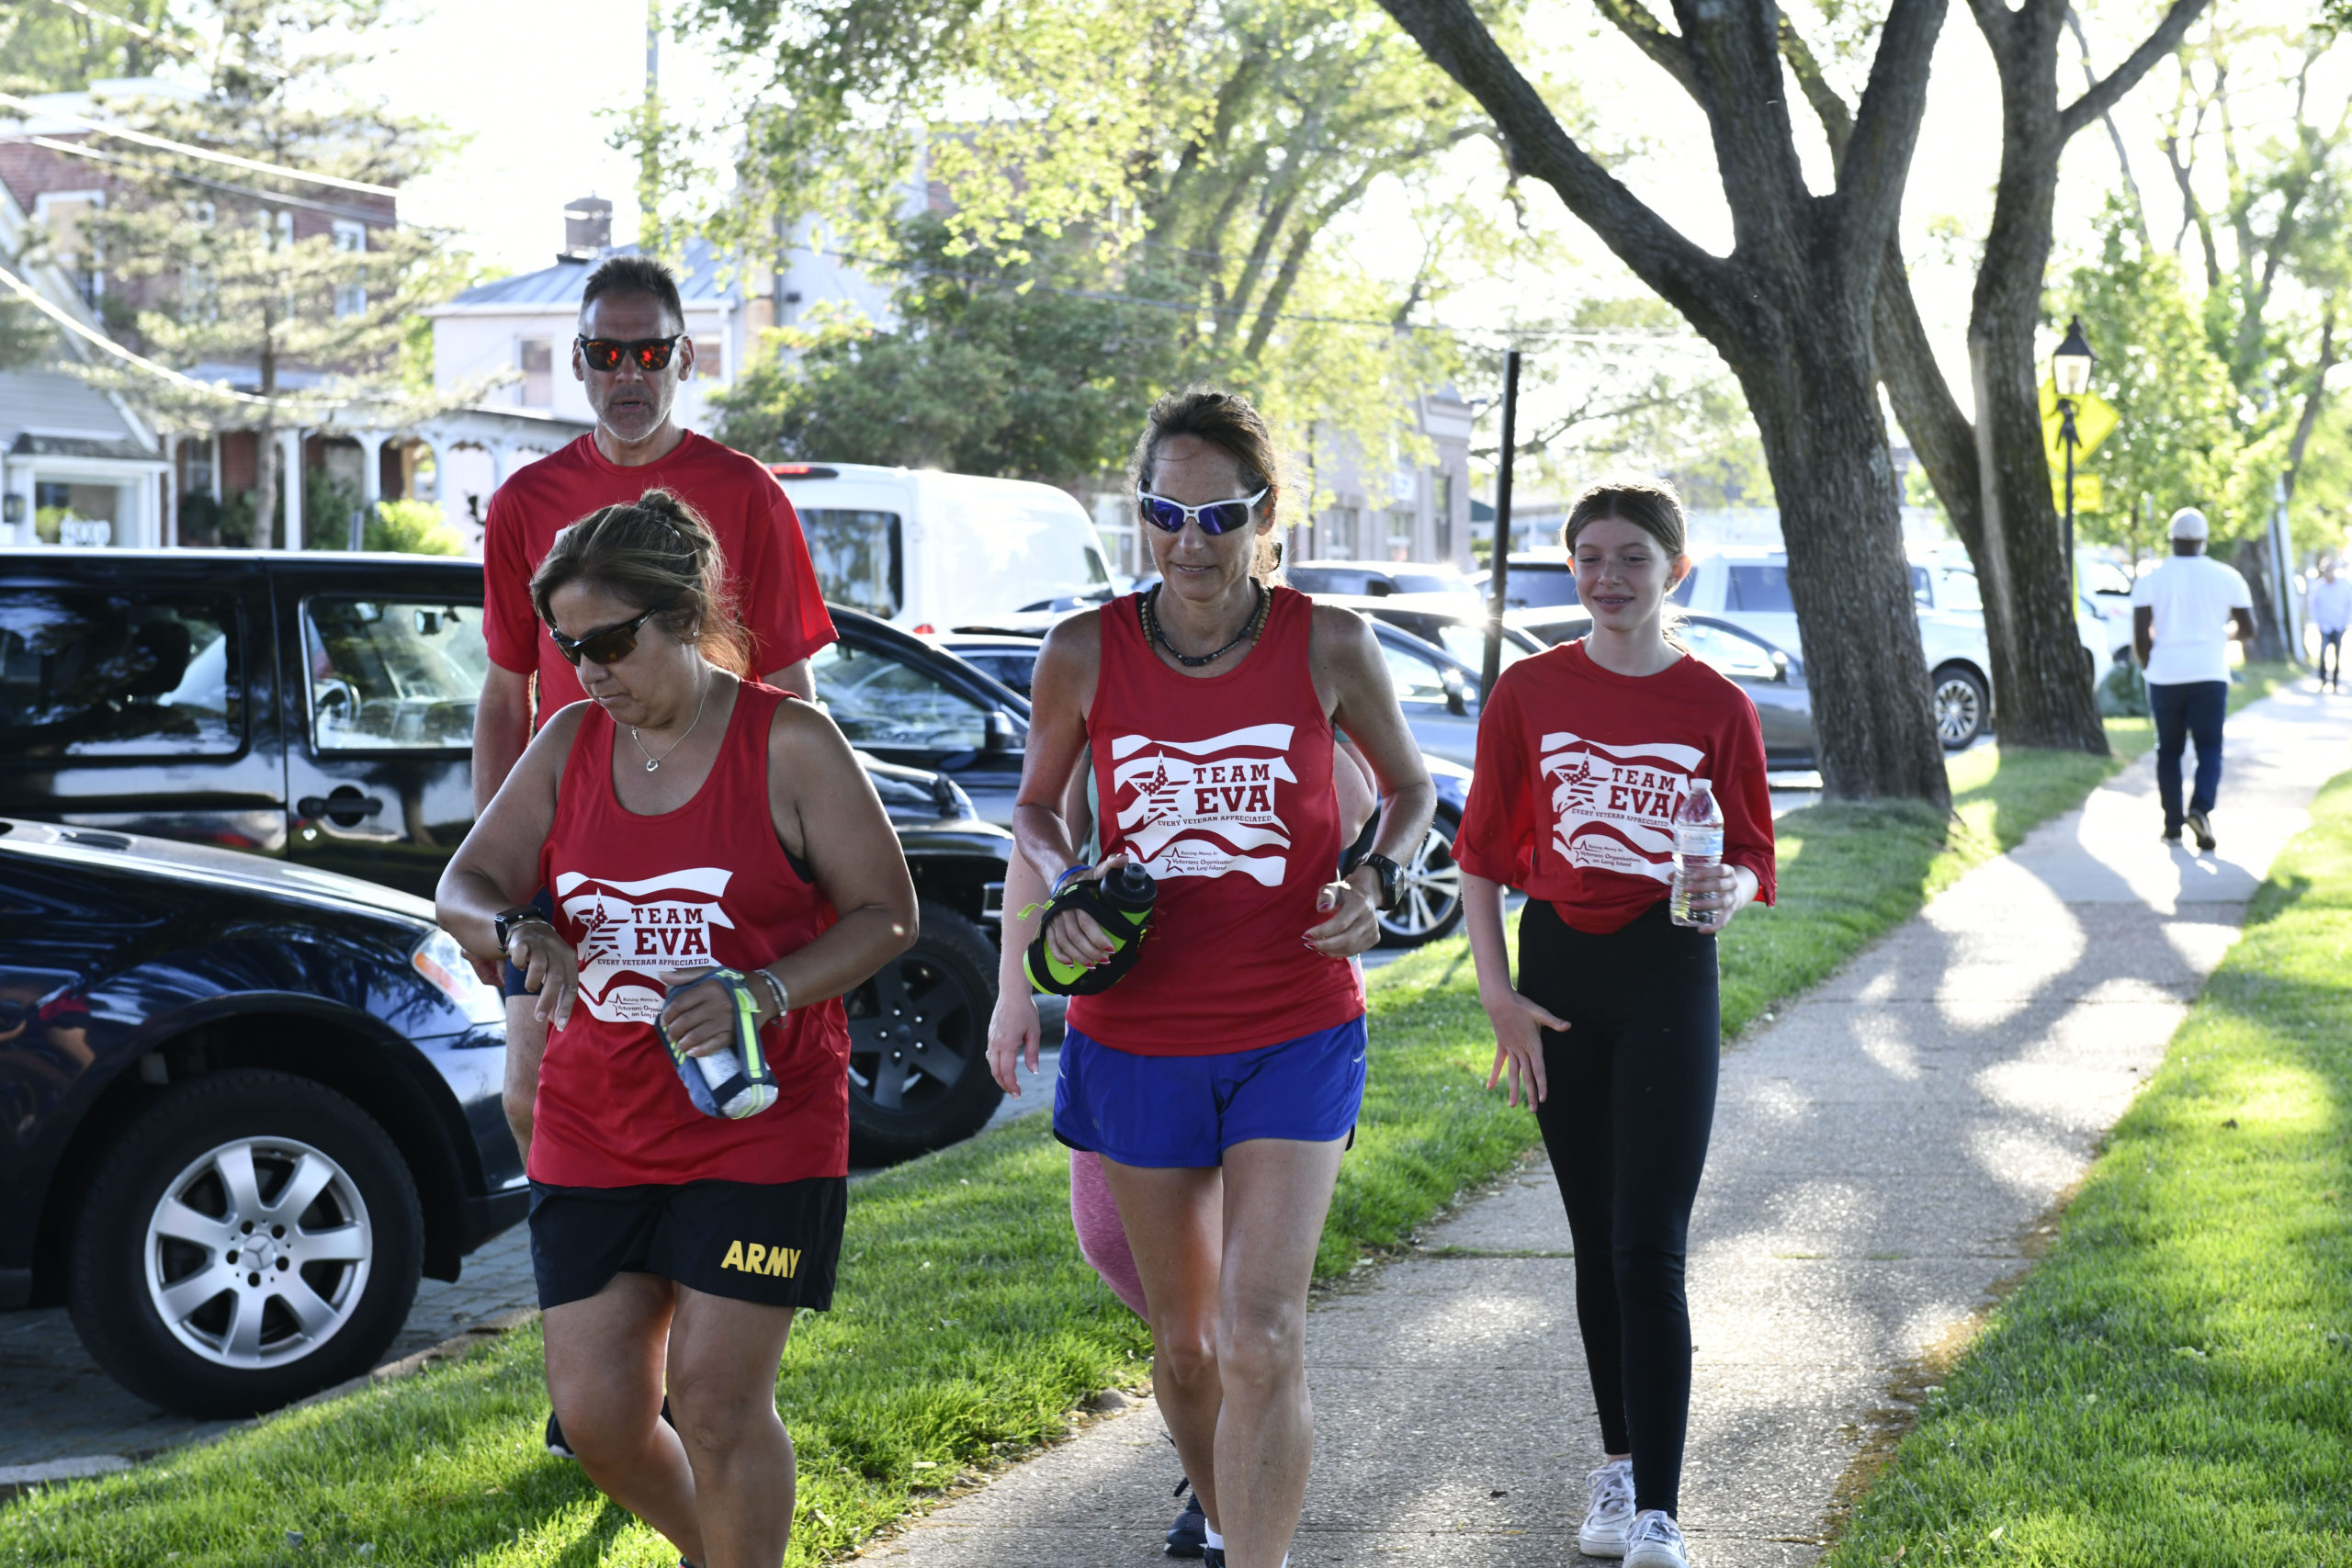 Ultra-Marathon Runner Eva Casale, center, in Sag Harbor on Thursday. For past five years, Ms. Casale  has been using her talent to run long distances and capitalizing on her physical and mental focus by pounding the pavement a minimum of 26.2 miles each day for seven day to raise funds to honor  troops,  local veterans and those who have fallen.  Ms. Casale ended her run at the Westhampton VFW Post 5350 on Saturday evening. DANA SHAW